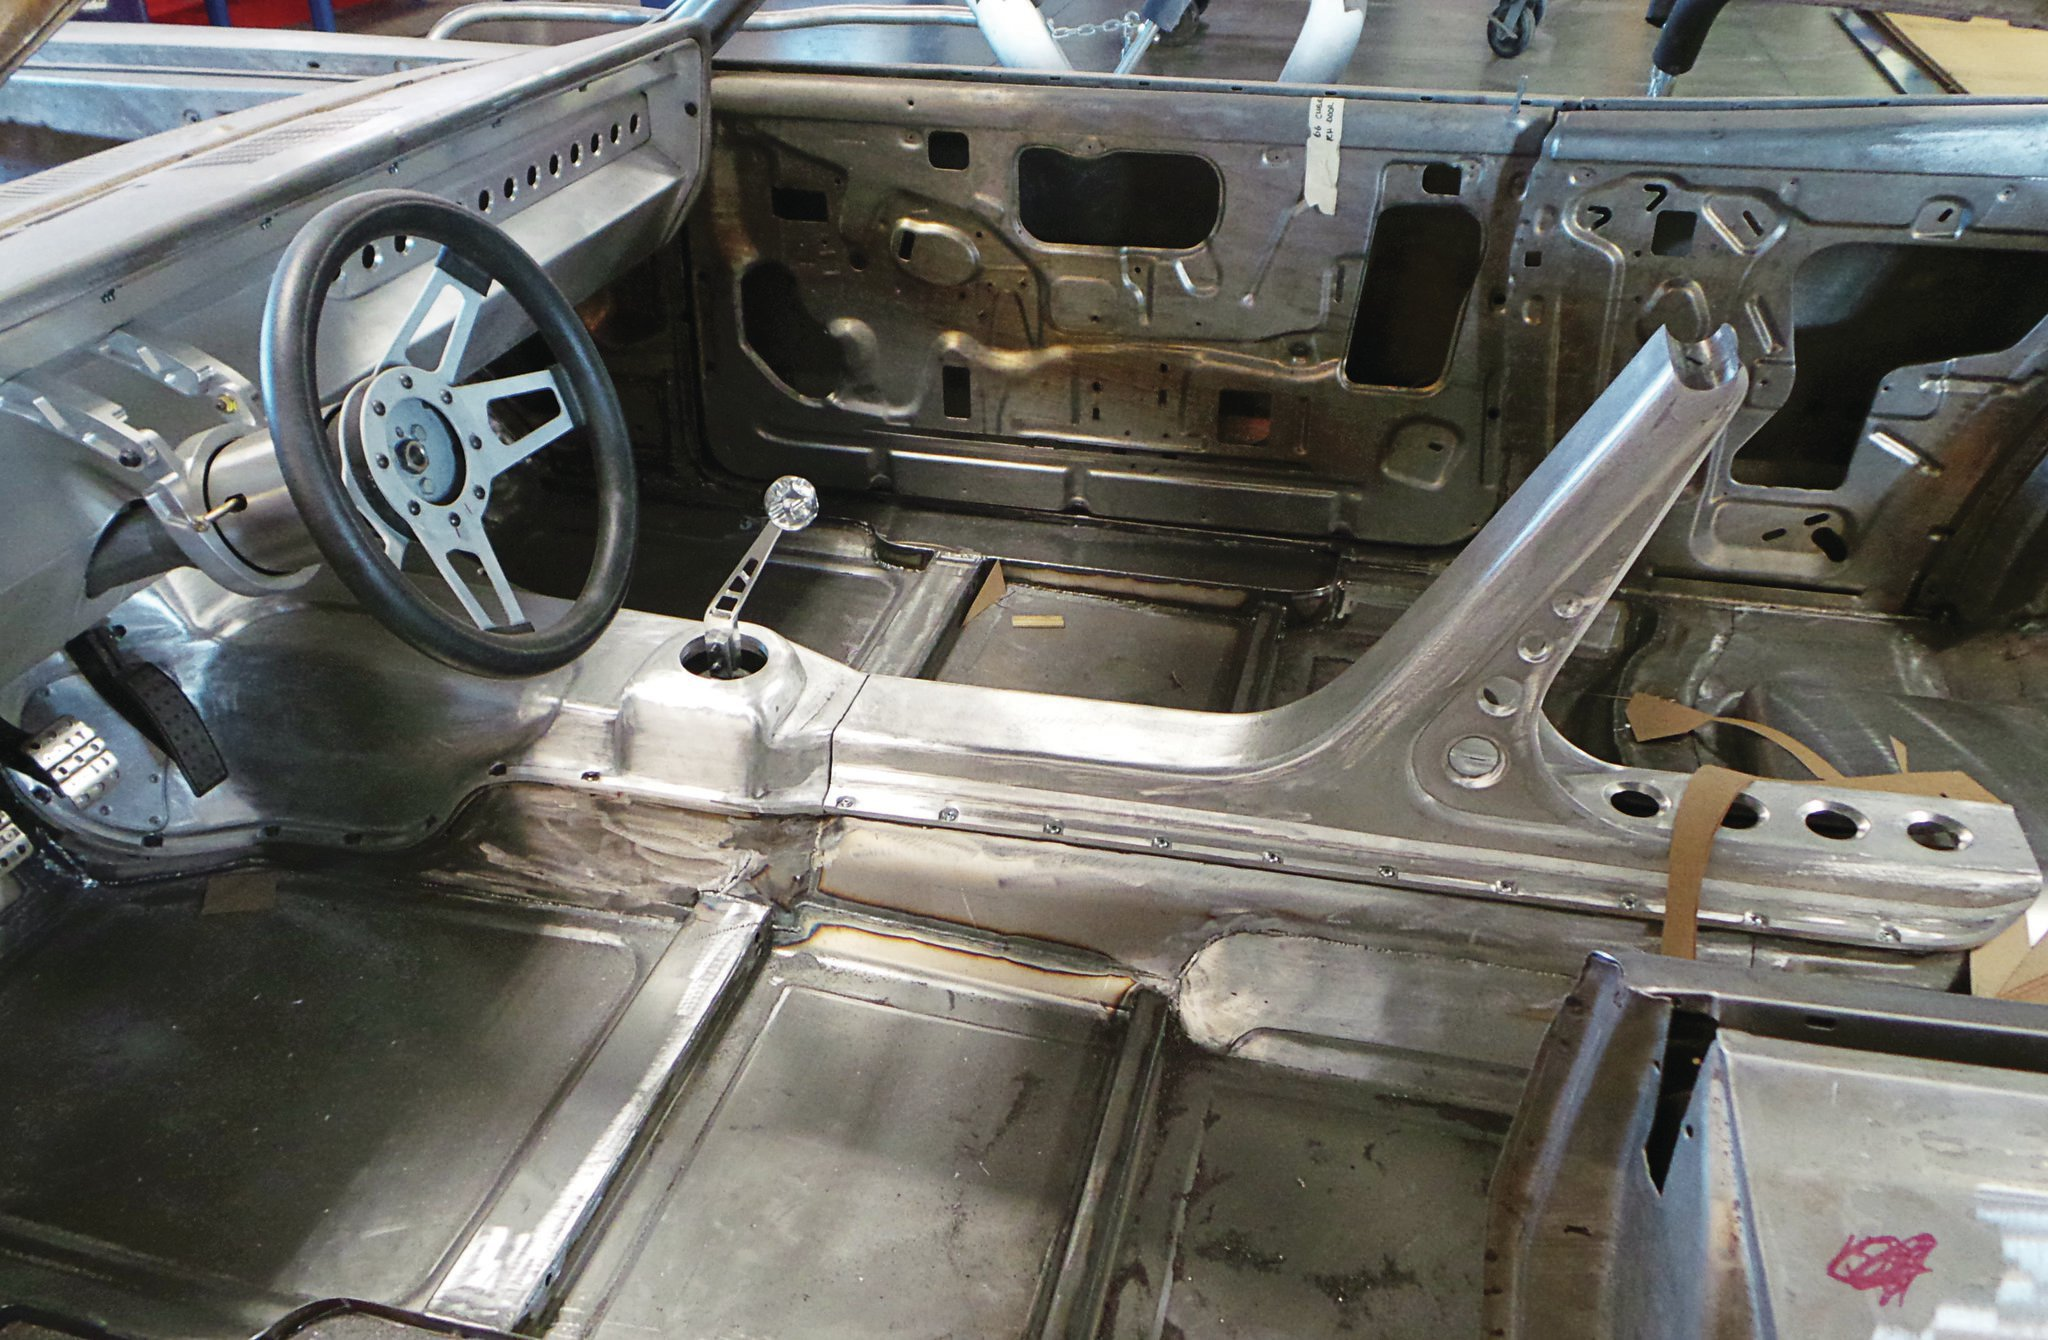 The console and harness bar support are now installed and the dash has been formed in aluminum. The elaborate steering-column support that will also hold the Racepak enclosure has been whittled in billet aluminum and trial fit.